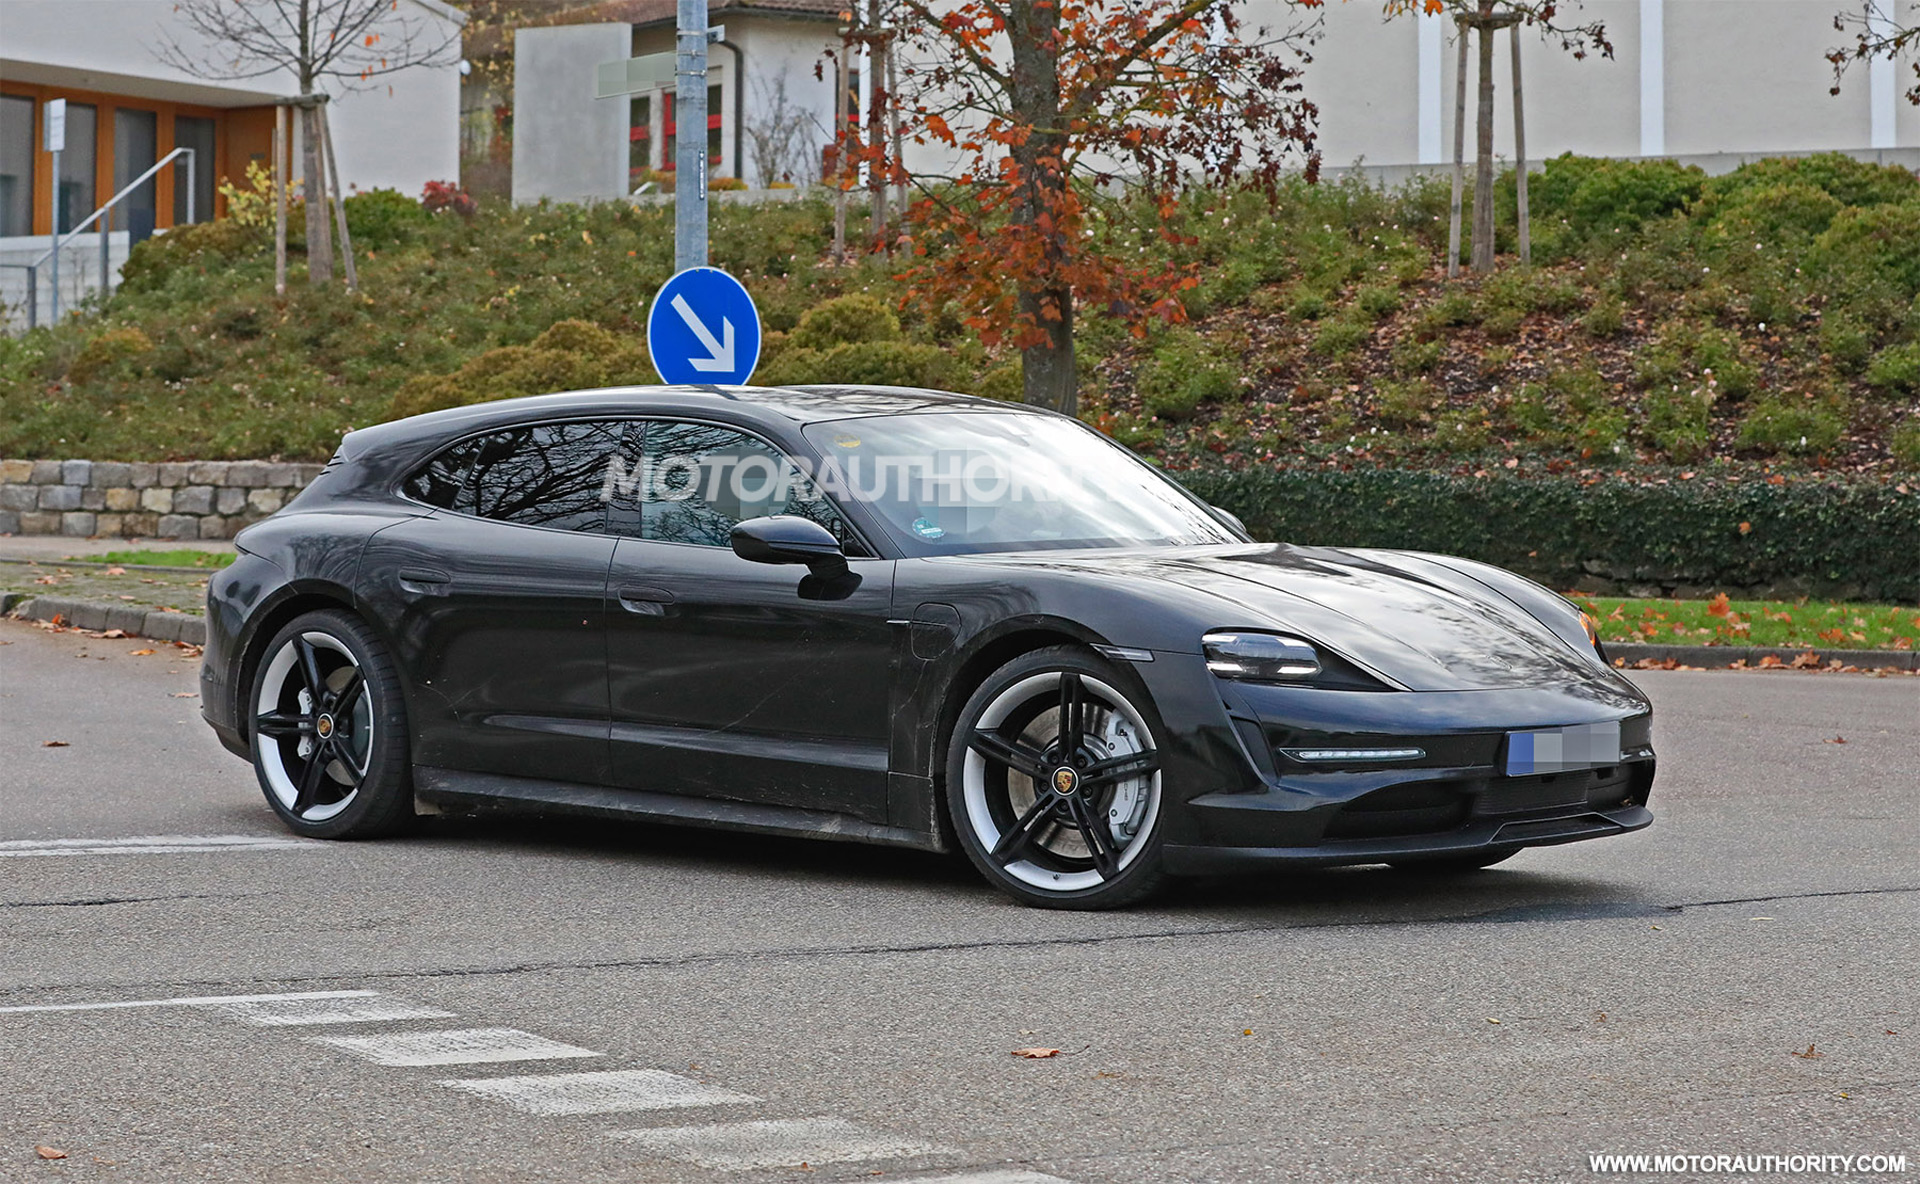 2021 Porsche Taycan Cross Turismo Spy Shots Electric Wagon Sheds Camo